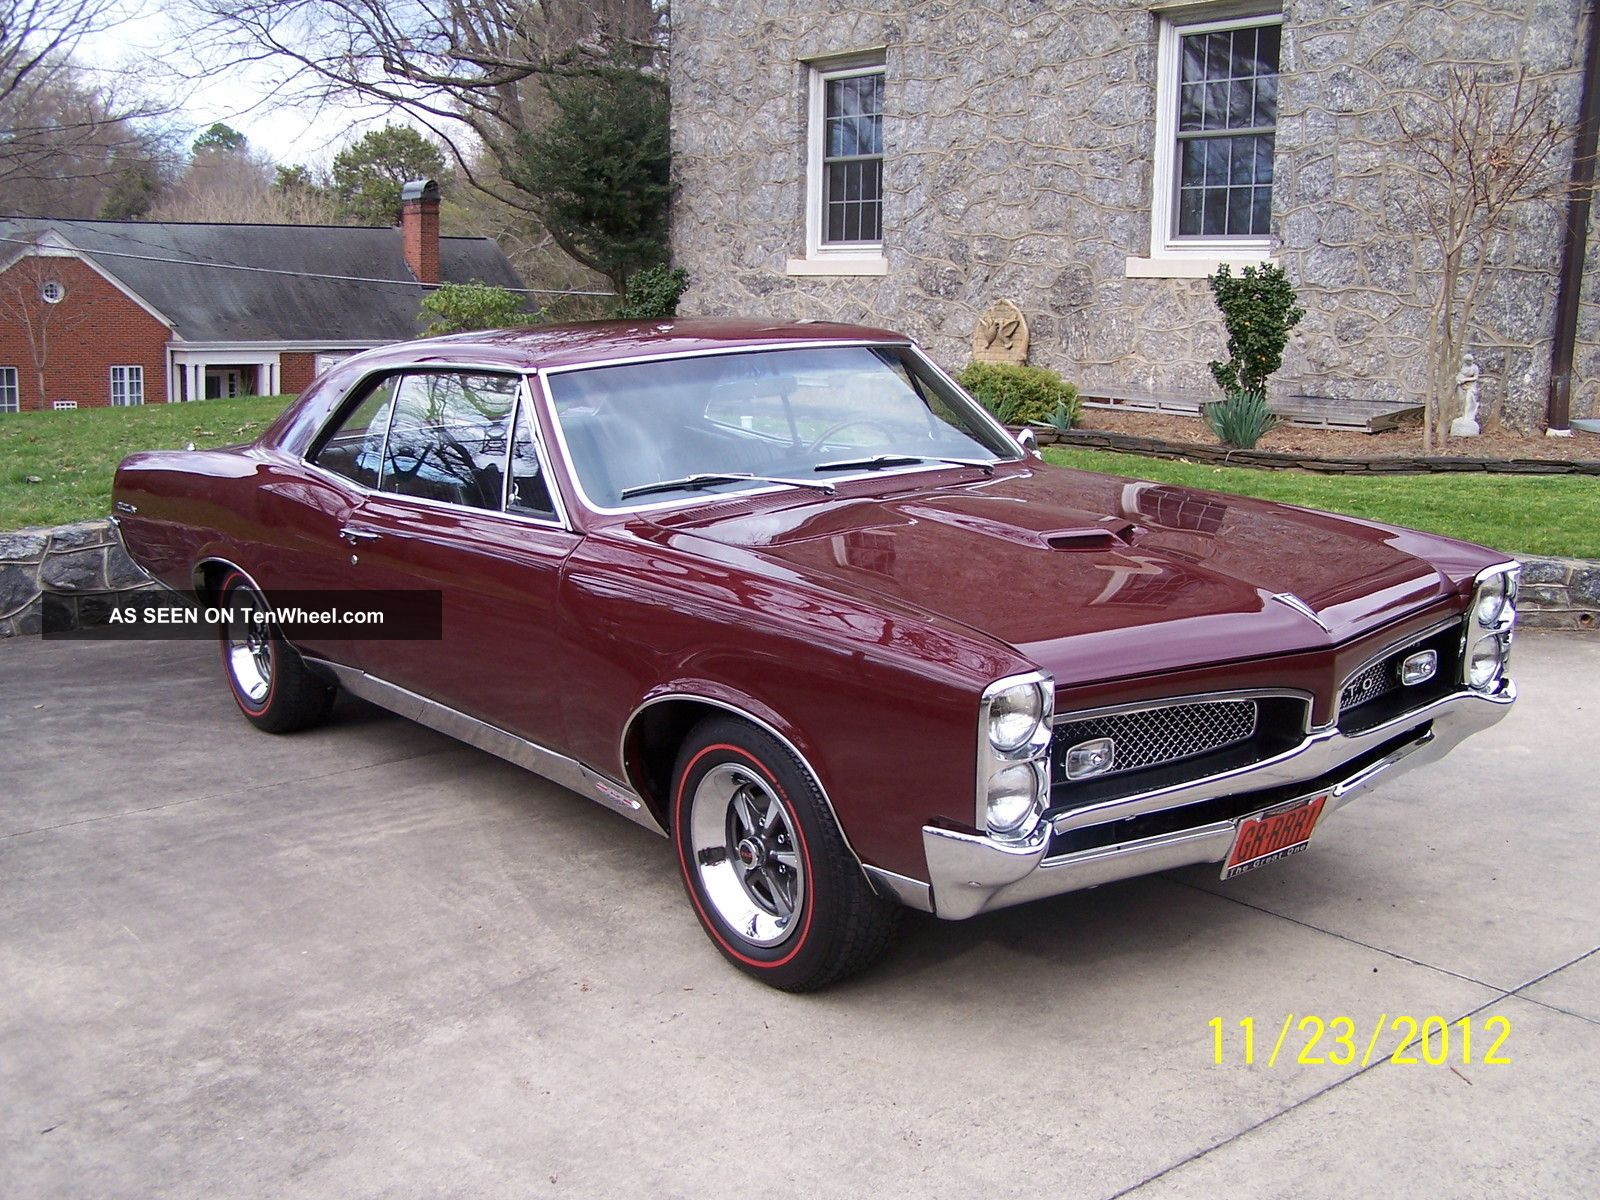 66 Gto Wiper Motor Wiring Diagram Schematics Diagrams 67 1967 Convertible Get Free Image About Engine Pontiac